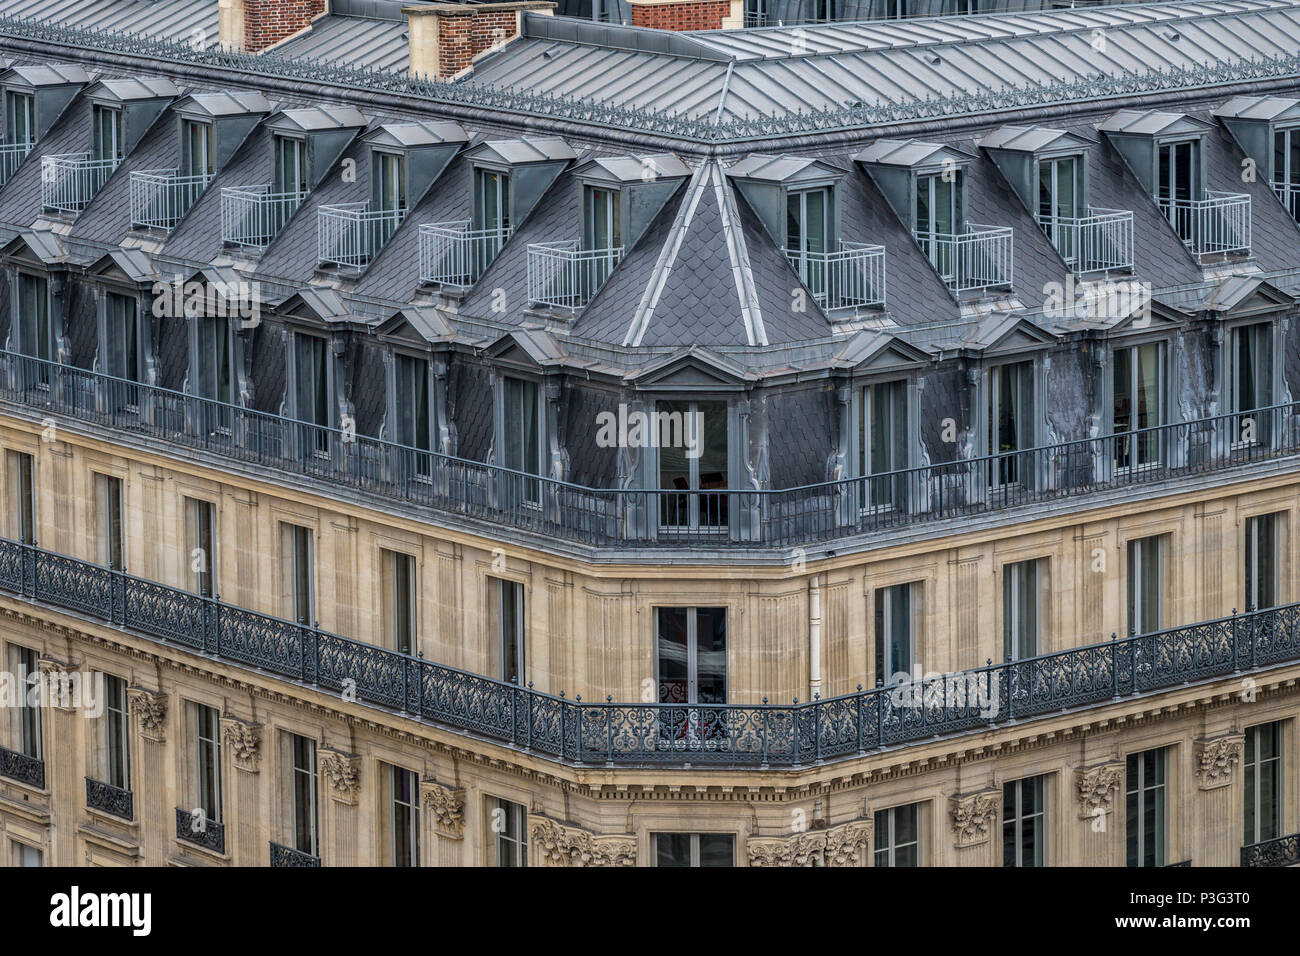 The  elegant  grey slate rooftops of Paris apartment buildings a running balcony and attic rooms, Boulevard Haussmann ,Paris ,France - Stock Image